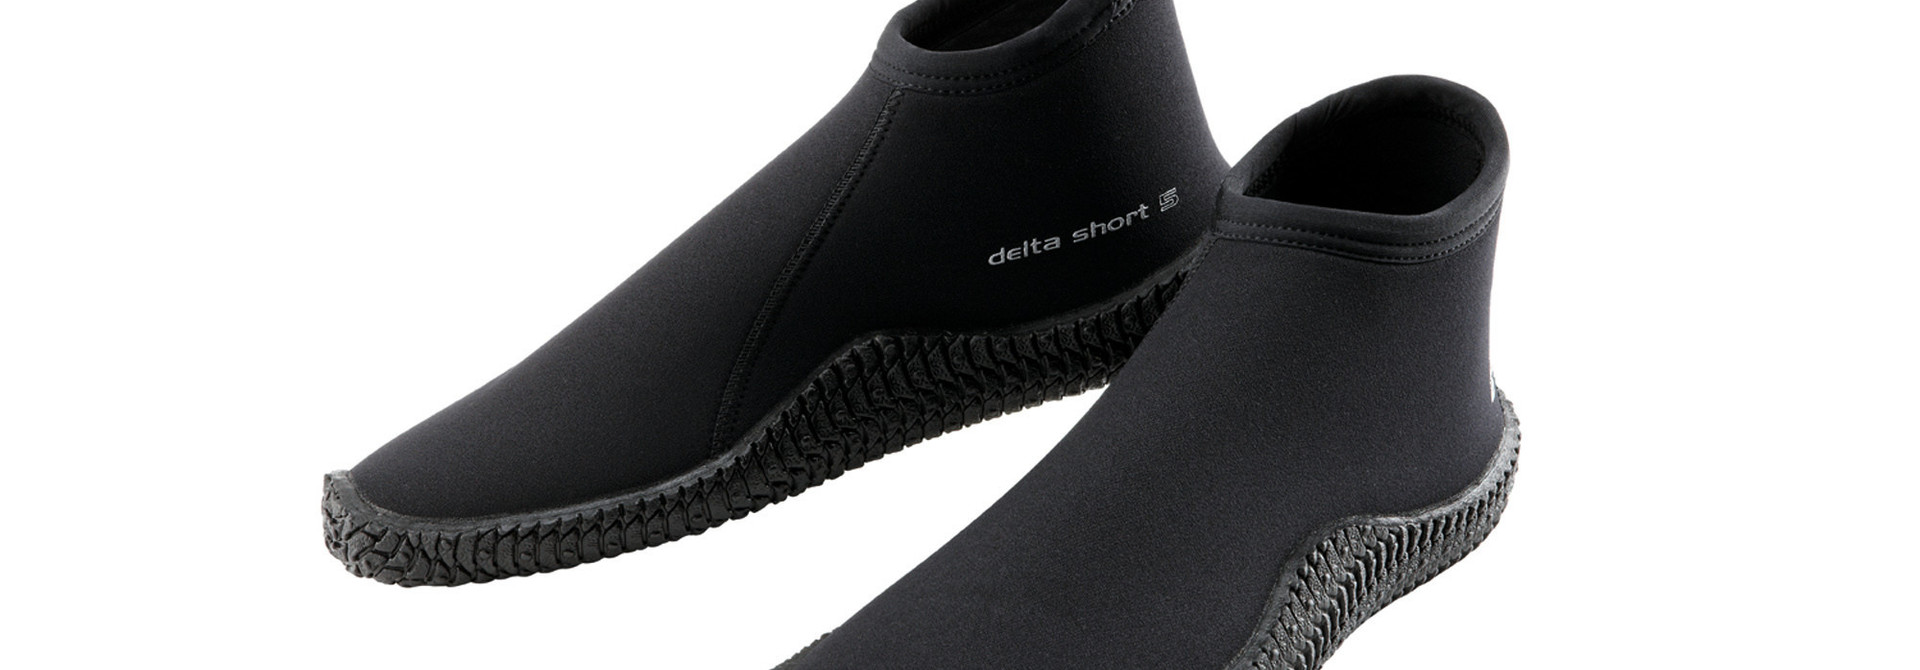 Delta Short Boot 3mm